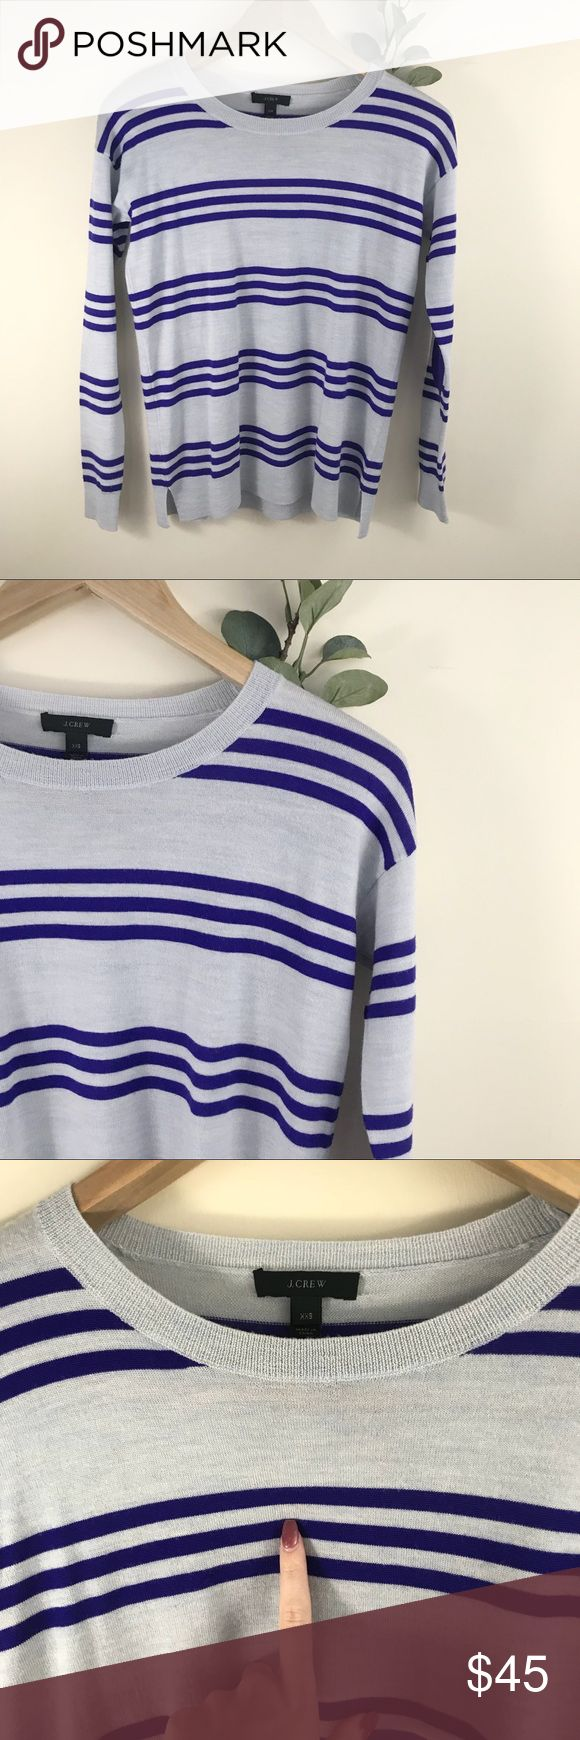 J. Crew Striped Wool Elbow Patch Pullover Sweater J. Crew Striped Wool Elbow Patch Pullover Sweater. Purple and gray. EUC. Very small minor spot as shown. Size XXS. Made of Merino wool. J. Crew Sweaters Crew & Scoop Necks